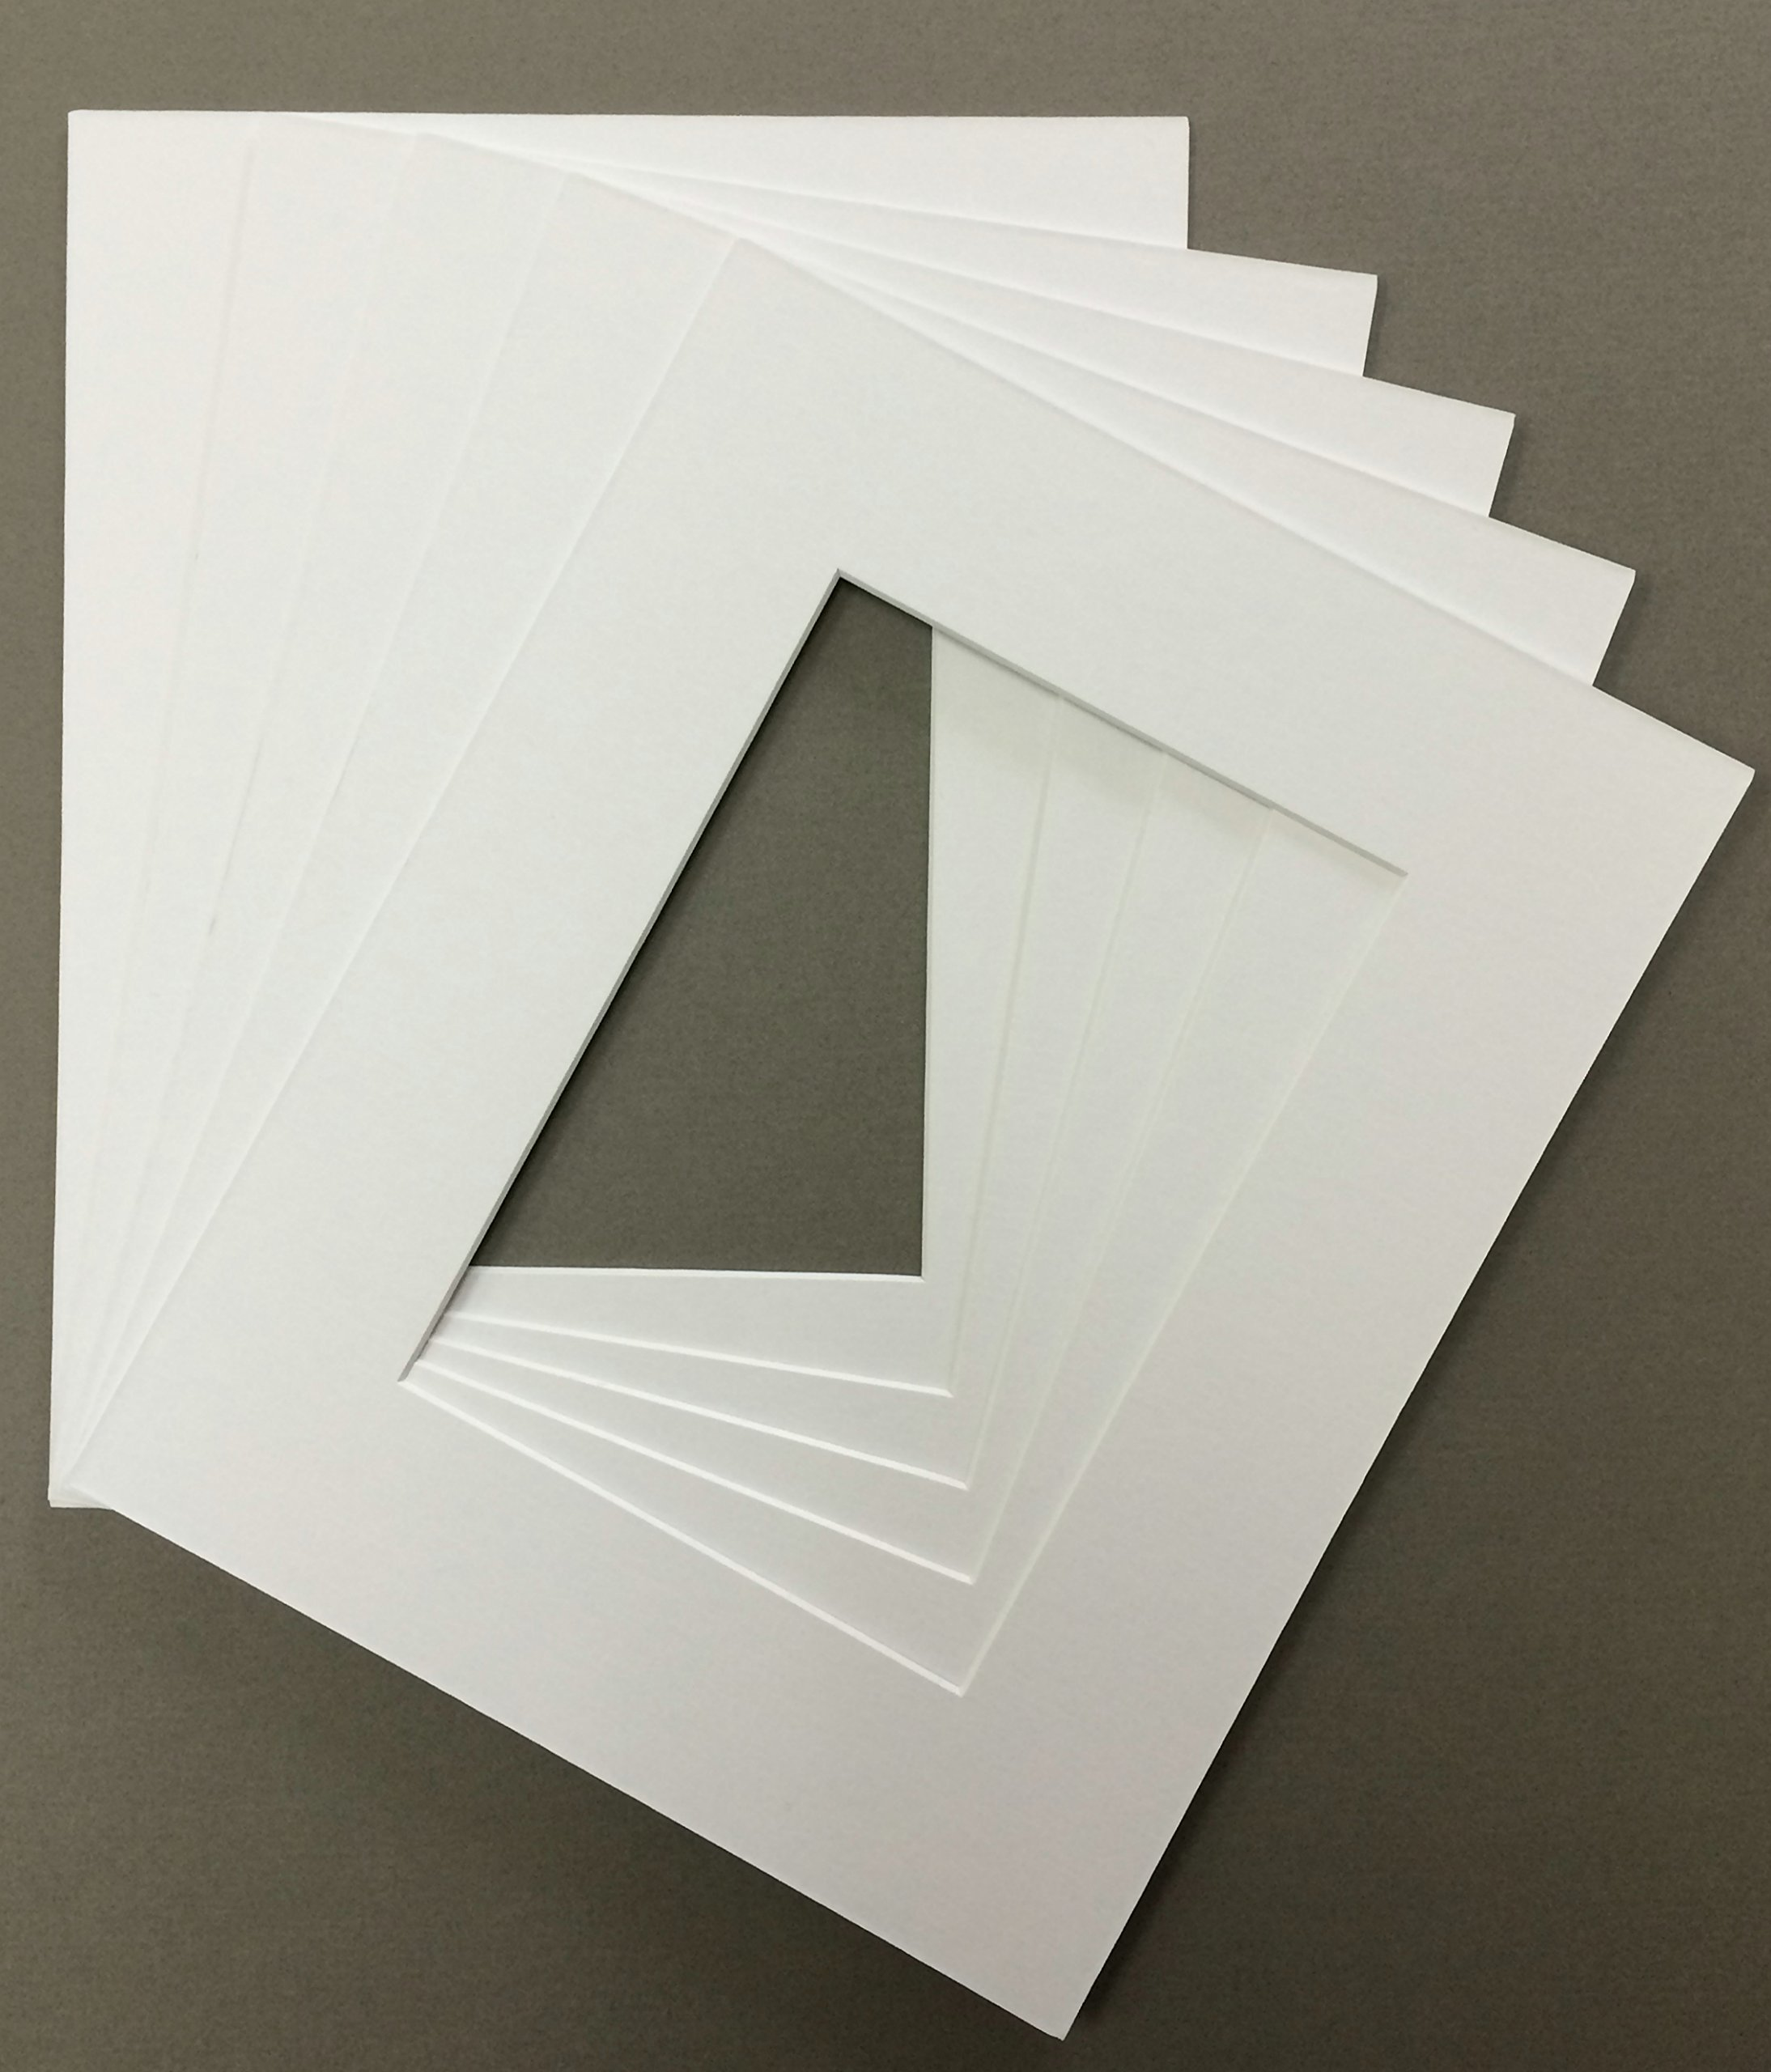 Pack of 5 18x24 White Picture Mats Mattes Matting with White Core Bevel Cut for 13x19 Pictures by bux1 picture matting